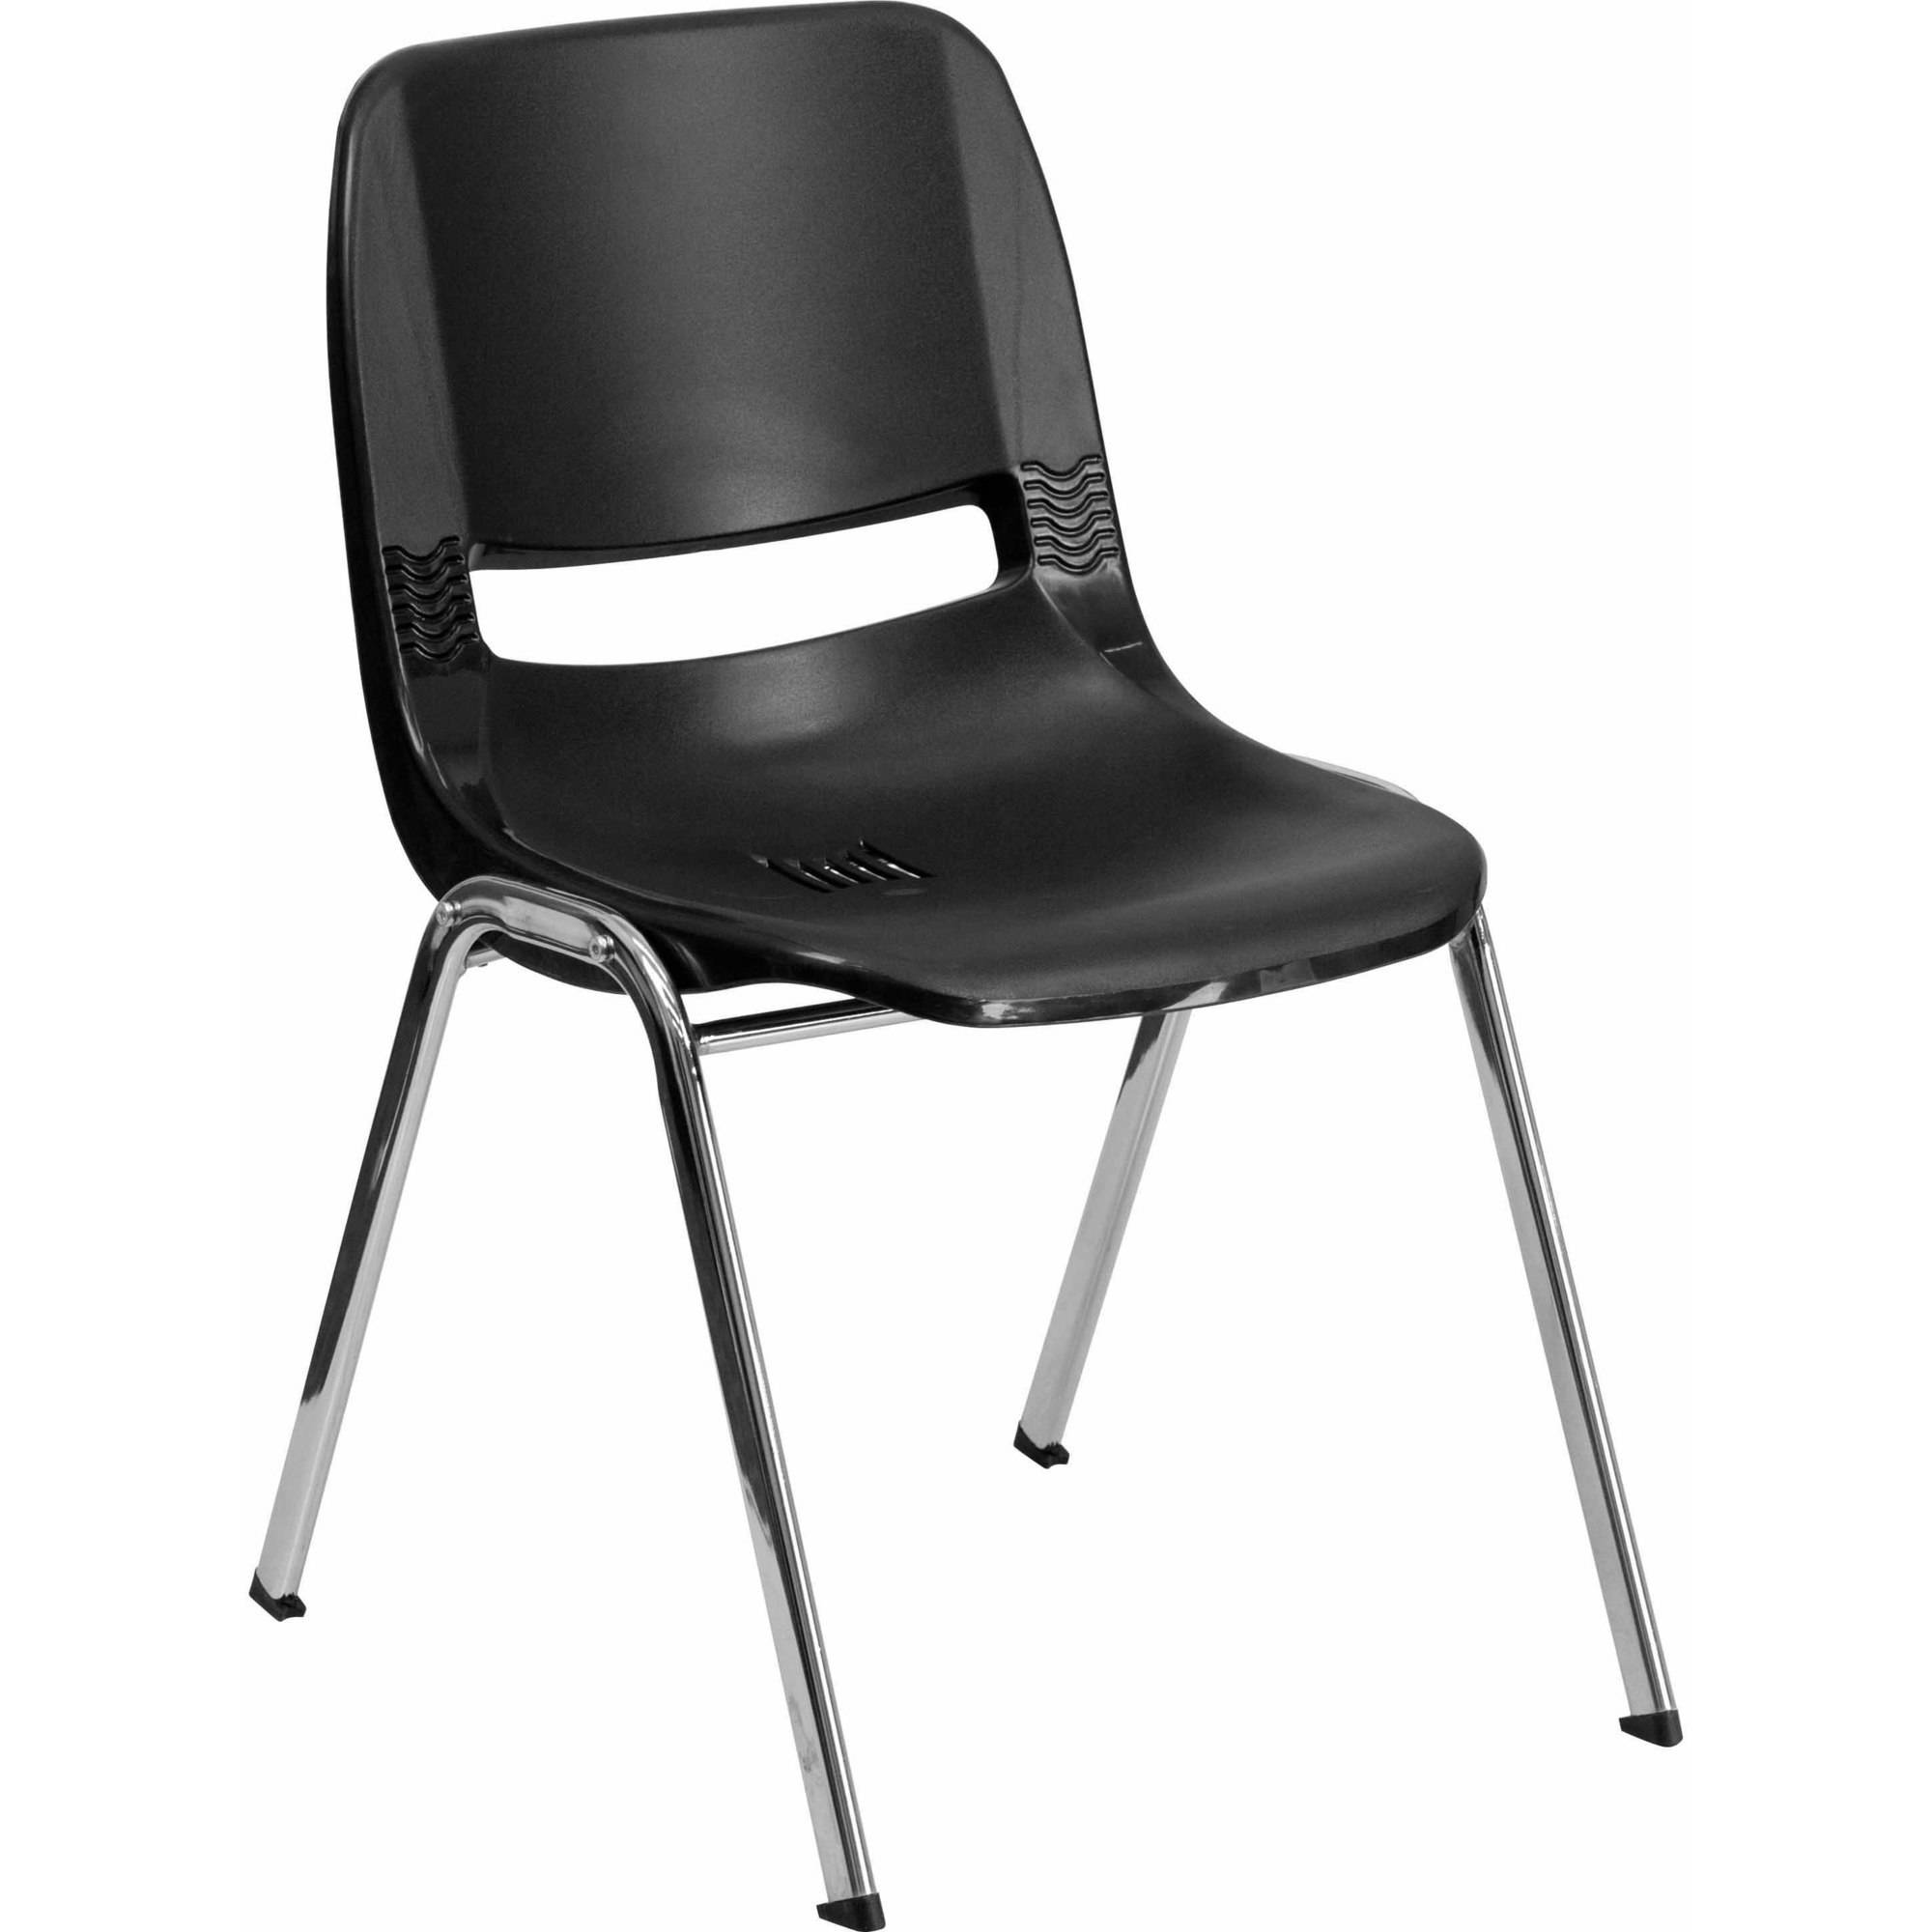 Flash Furniture HERCULES Series 440 lb Capacity Ergonomic Shell Stack Chair with Chrome